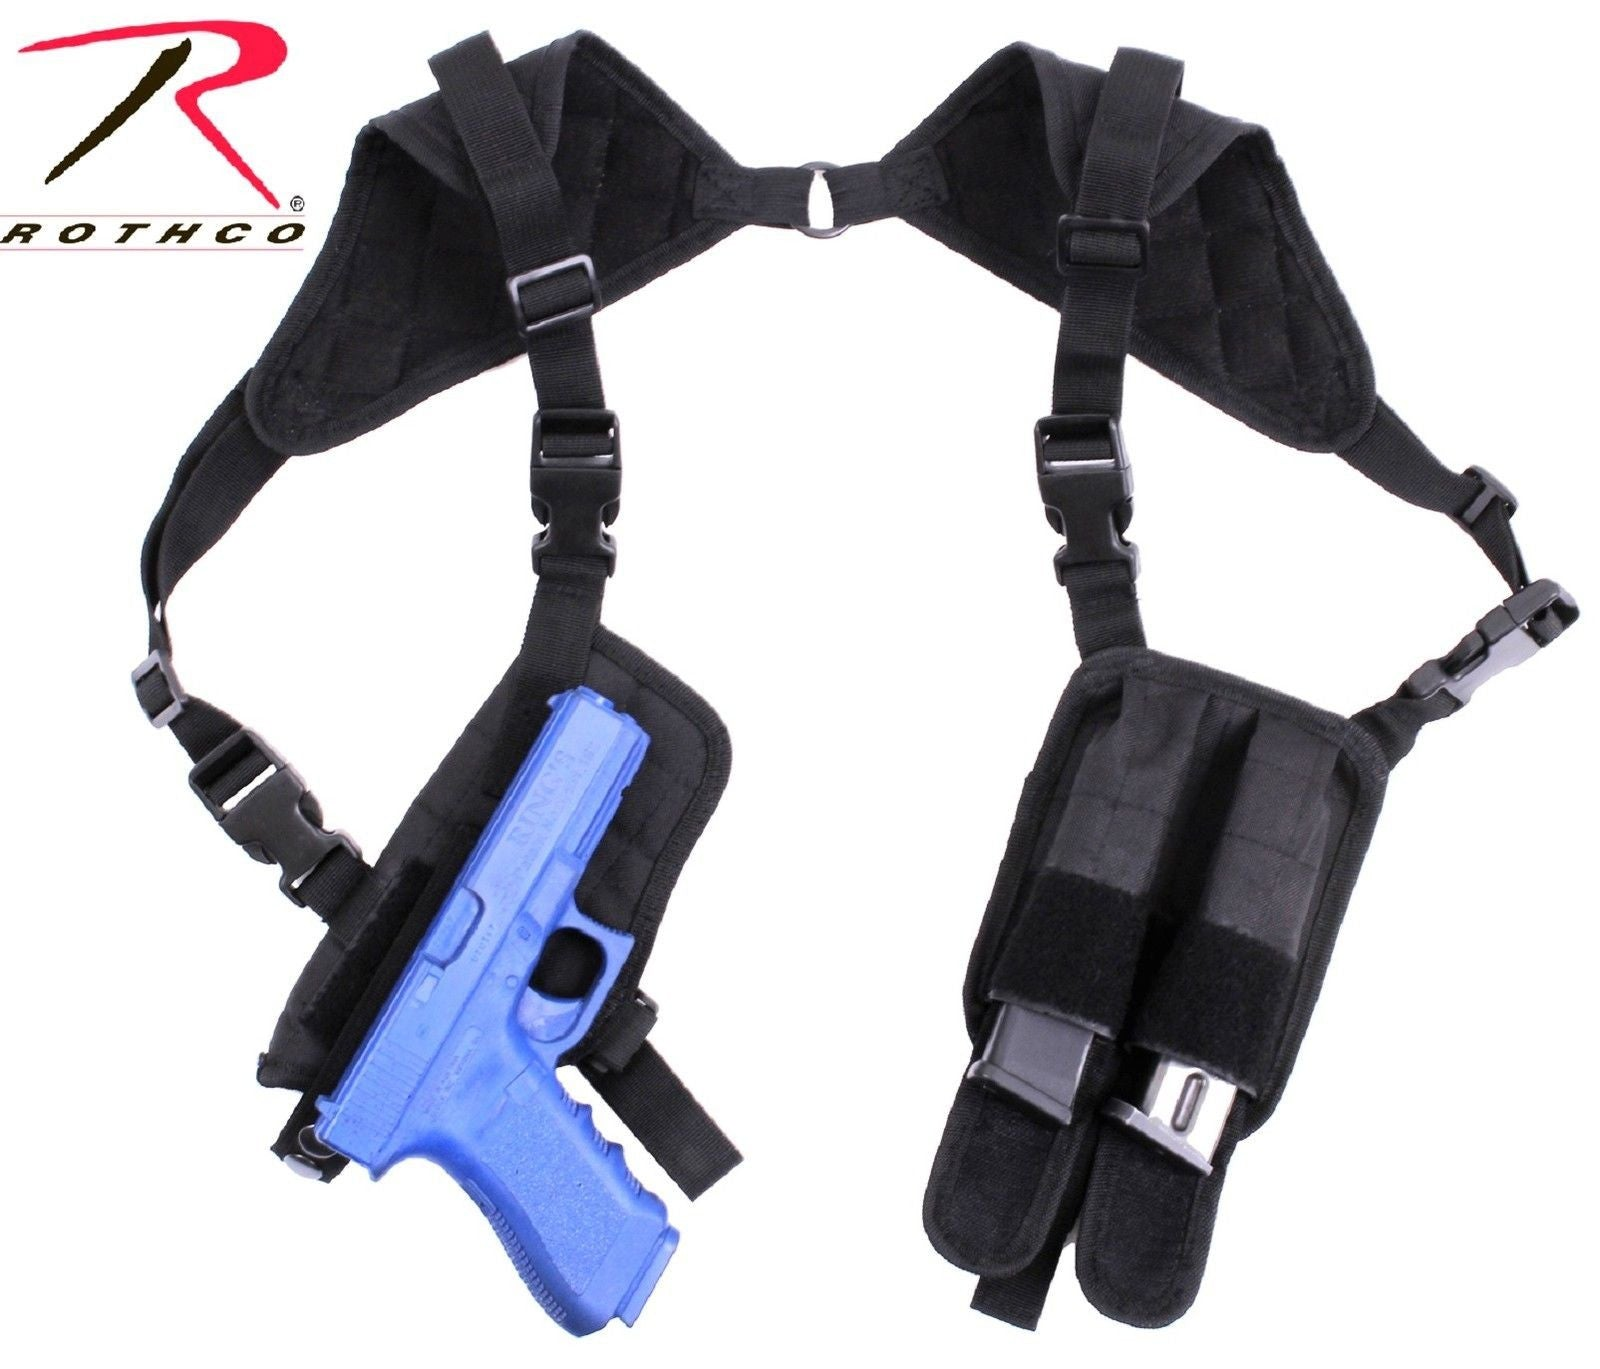 Ambidextrous Concealed Carry Shoulder Holster - Black Tactical Holsters